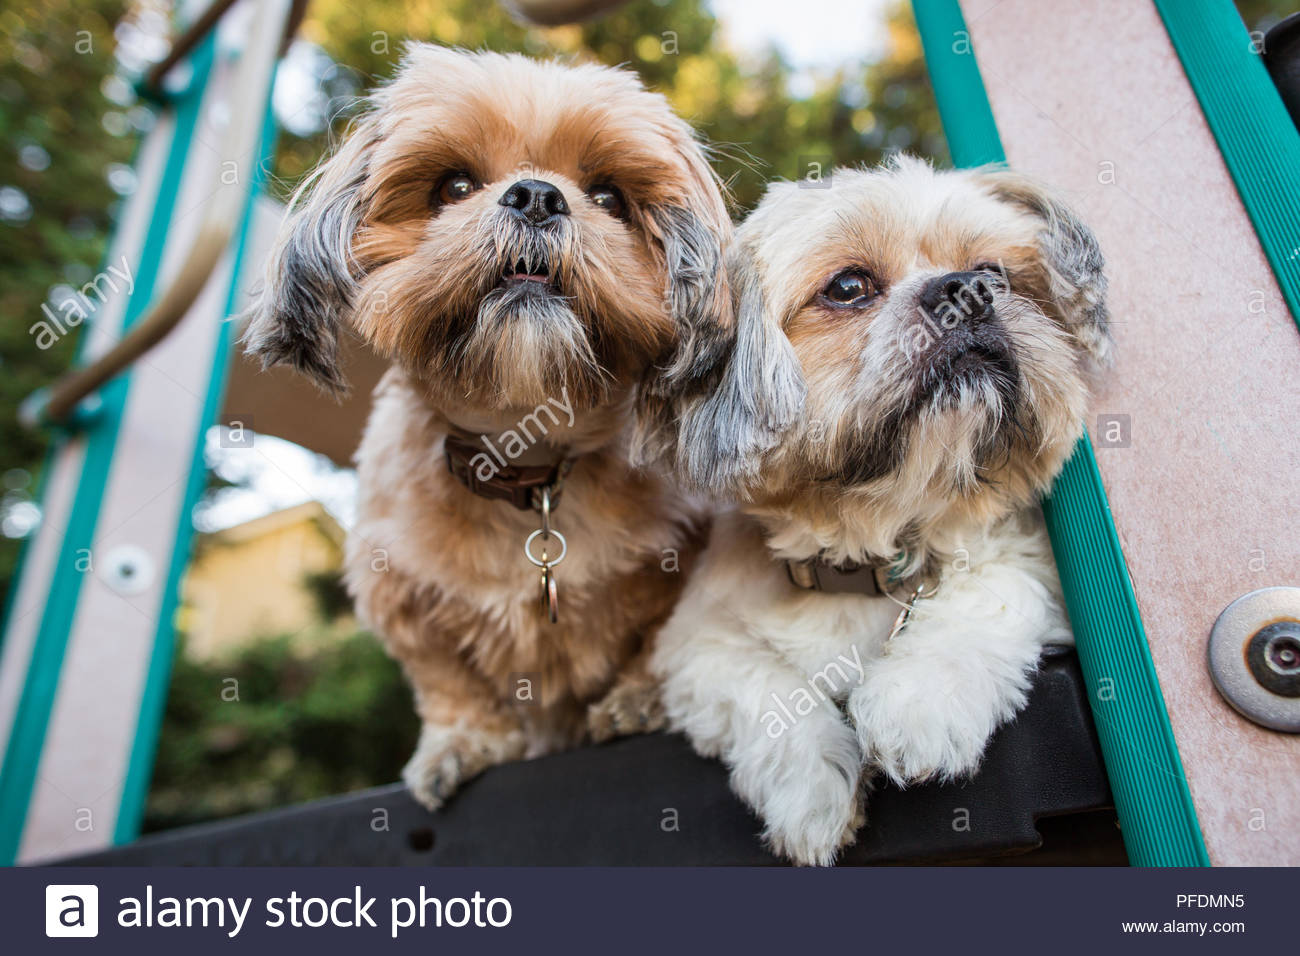 Two Alert Shih Tzu Dogs On Child Play Set Looking Out Stock Photo